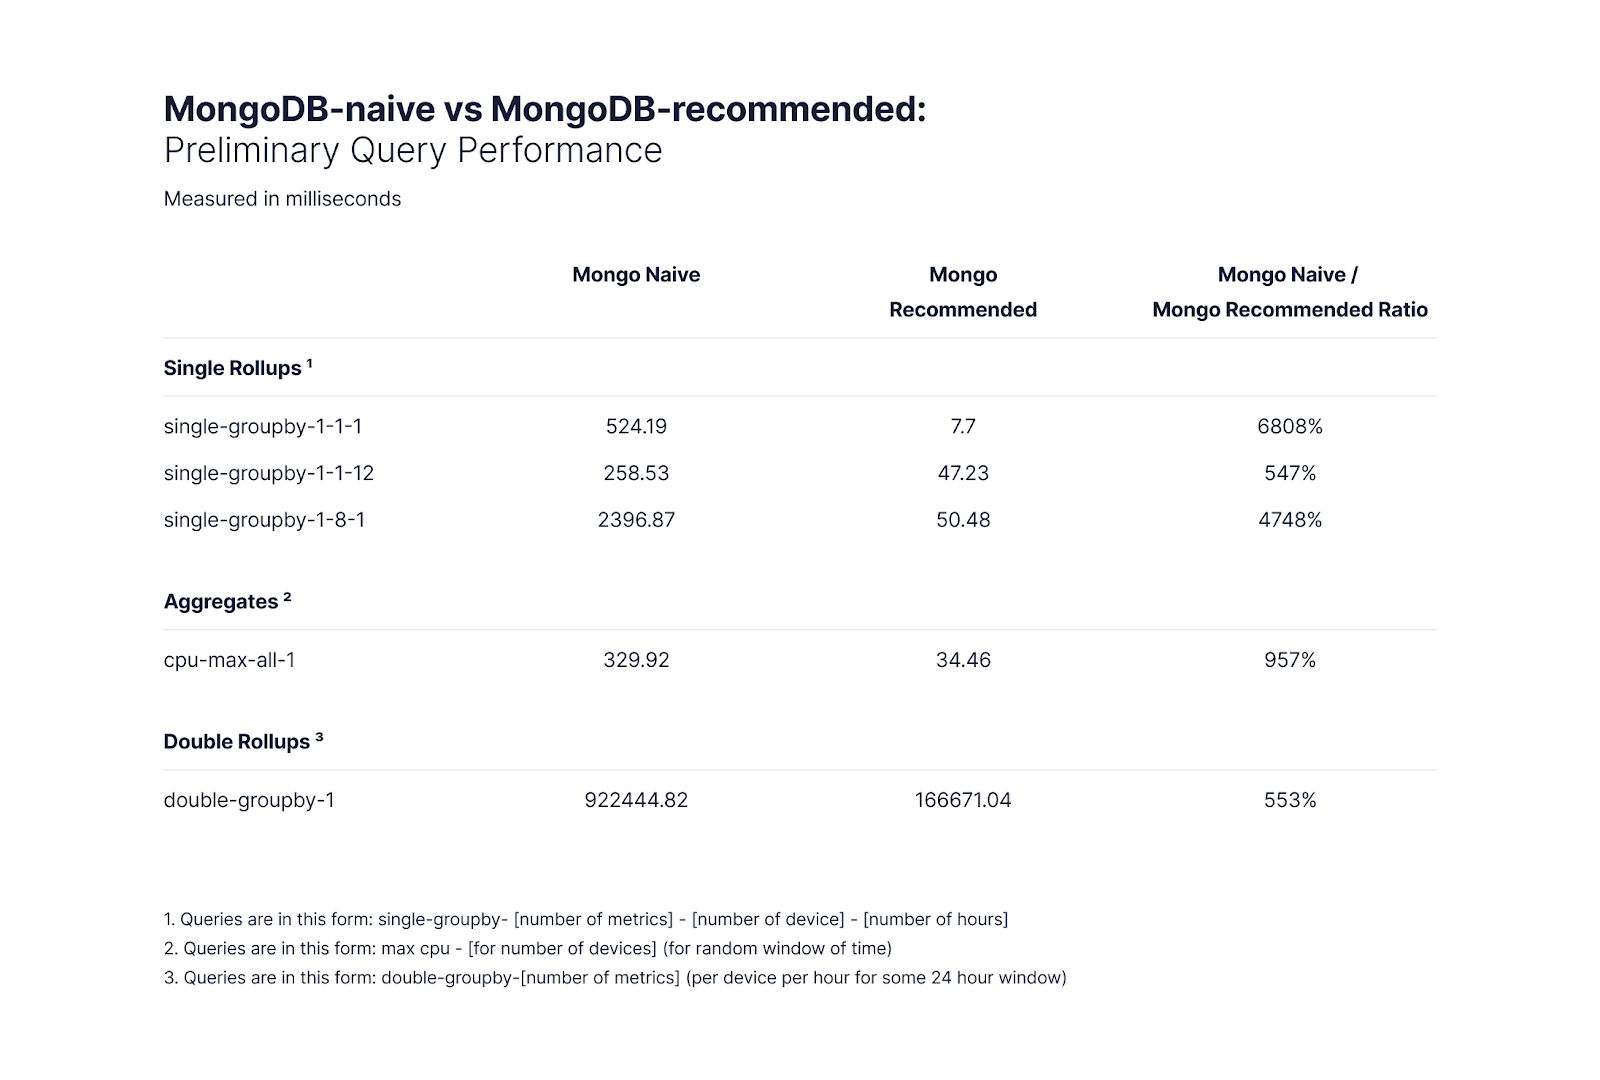 Mongo-recommended out performs Mongo-naive by 5x-68x depending on the query.